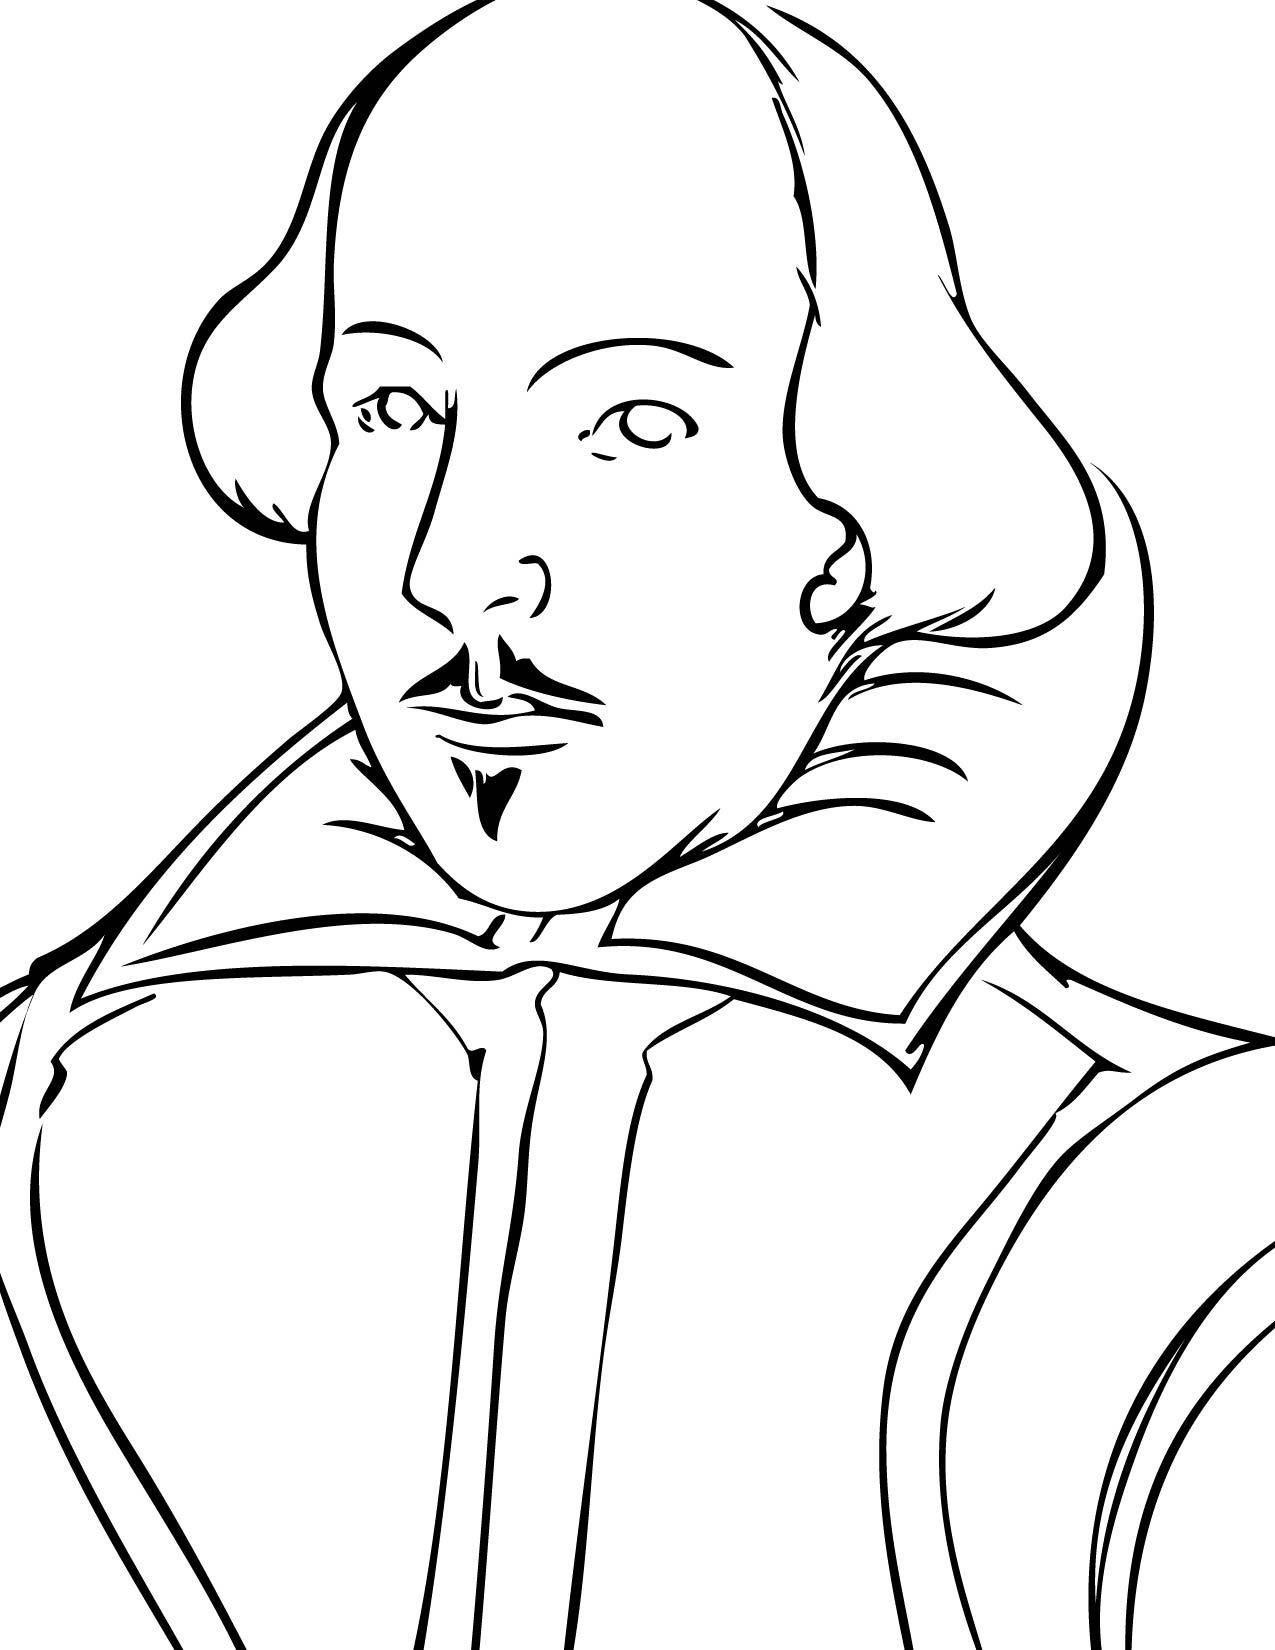 elizabethan coloring pages - photo#11